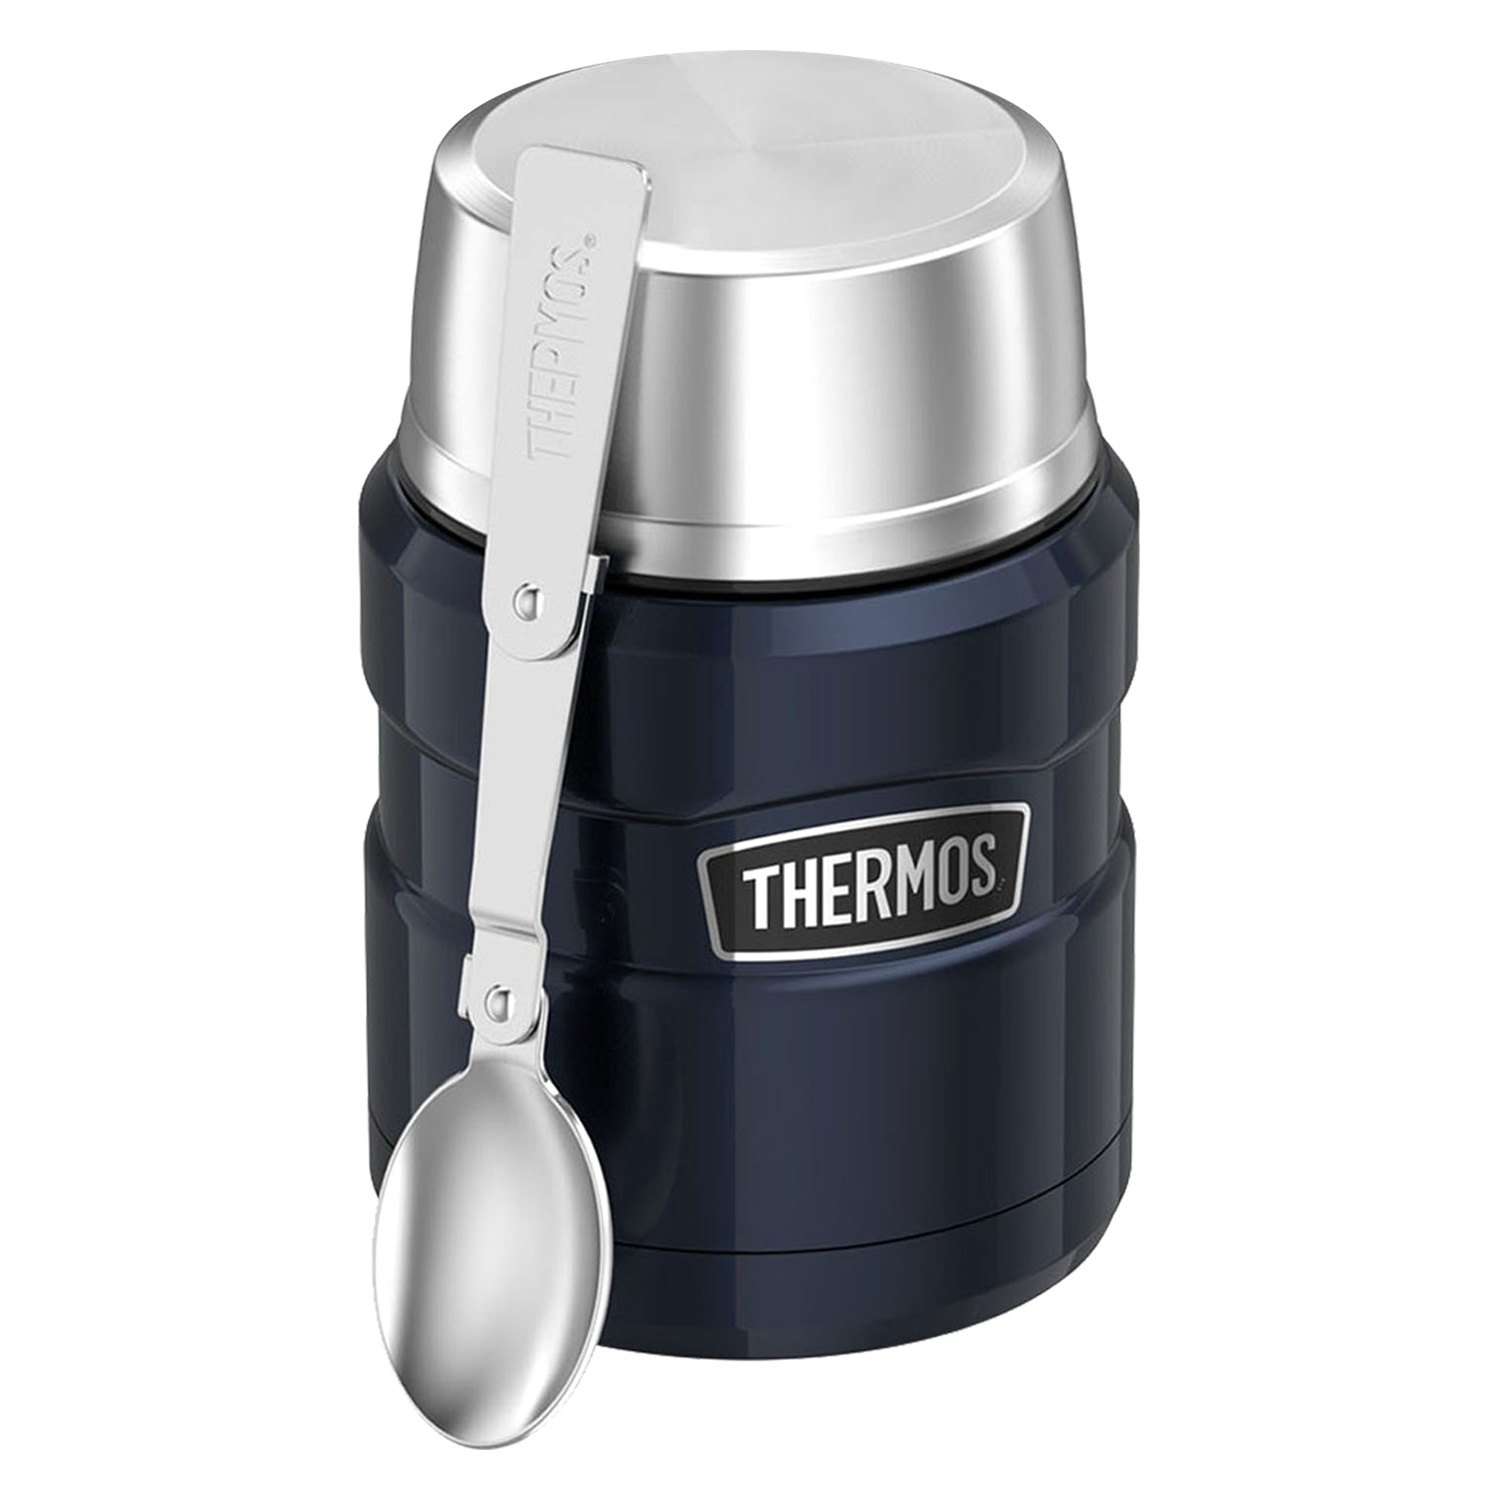 Thermos 174 Stainless King Vacuum Insulated Food Jar